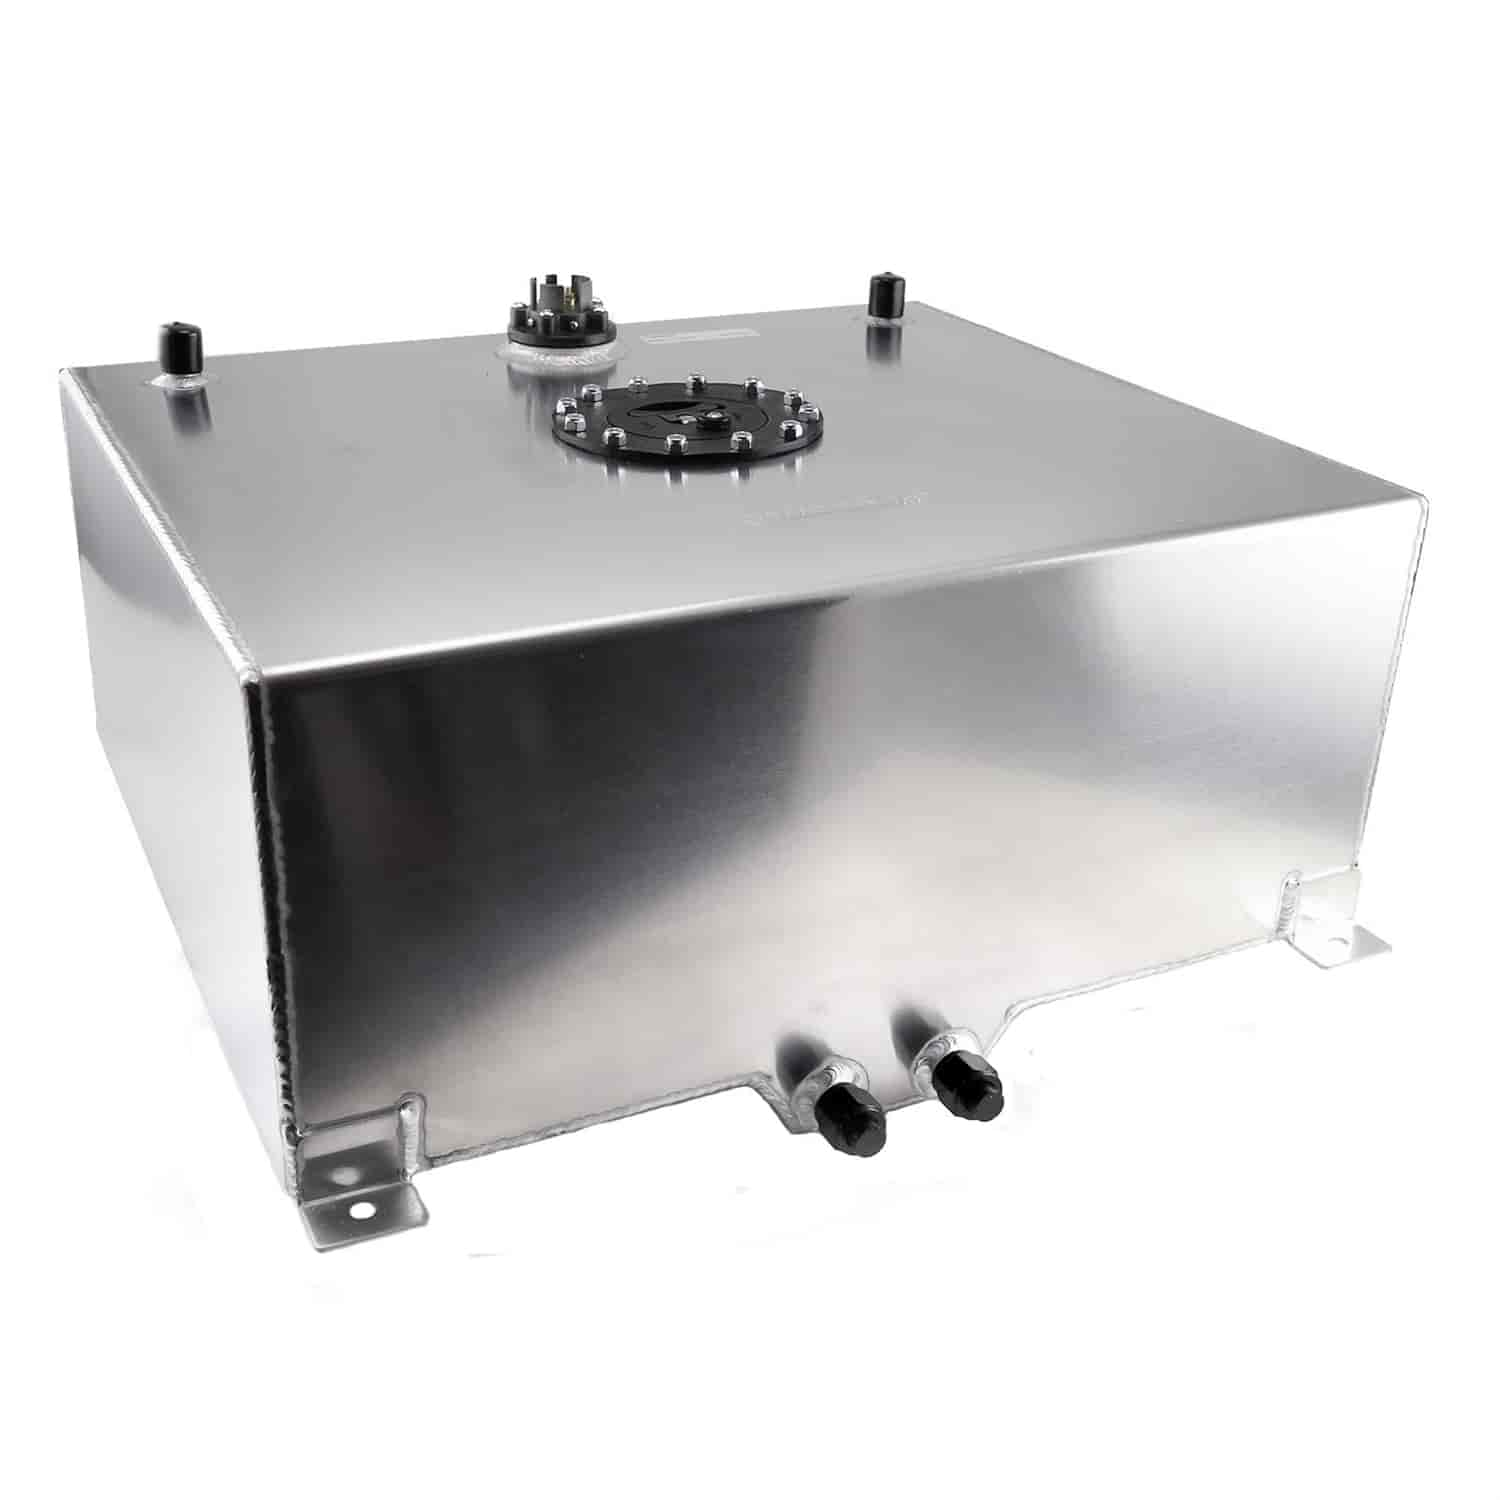 Speedmaster Polished Aluminum Fuel Cell with Sender Capacity: 20 Gallons